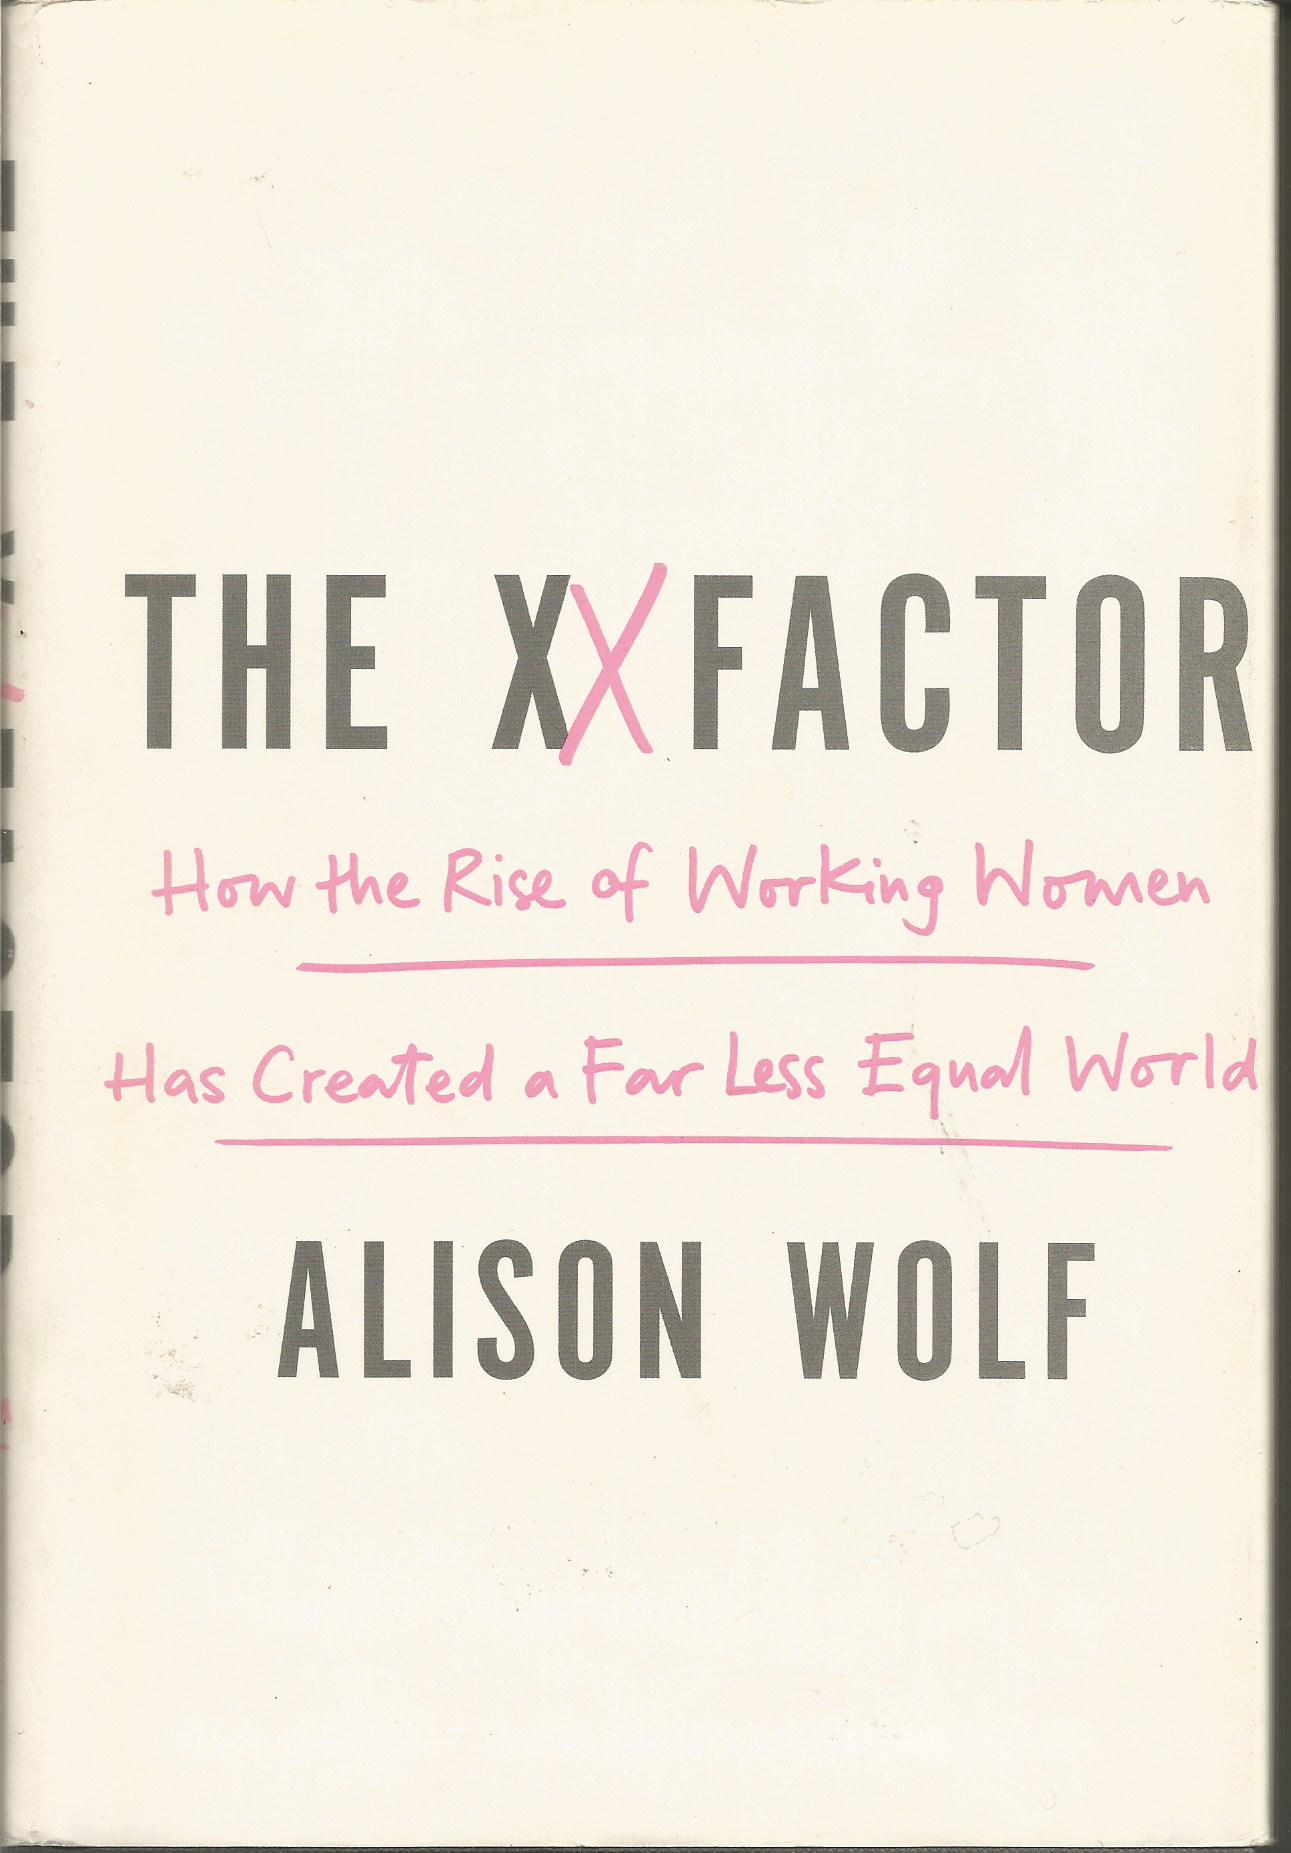 The XX Factor: How the Rise of Working Women Has Created a Far Less Equal World